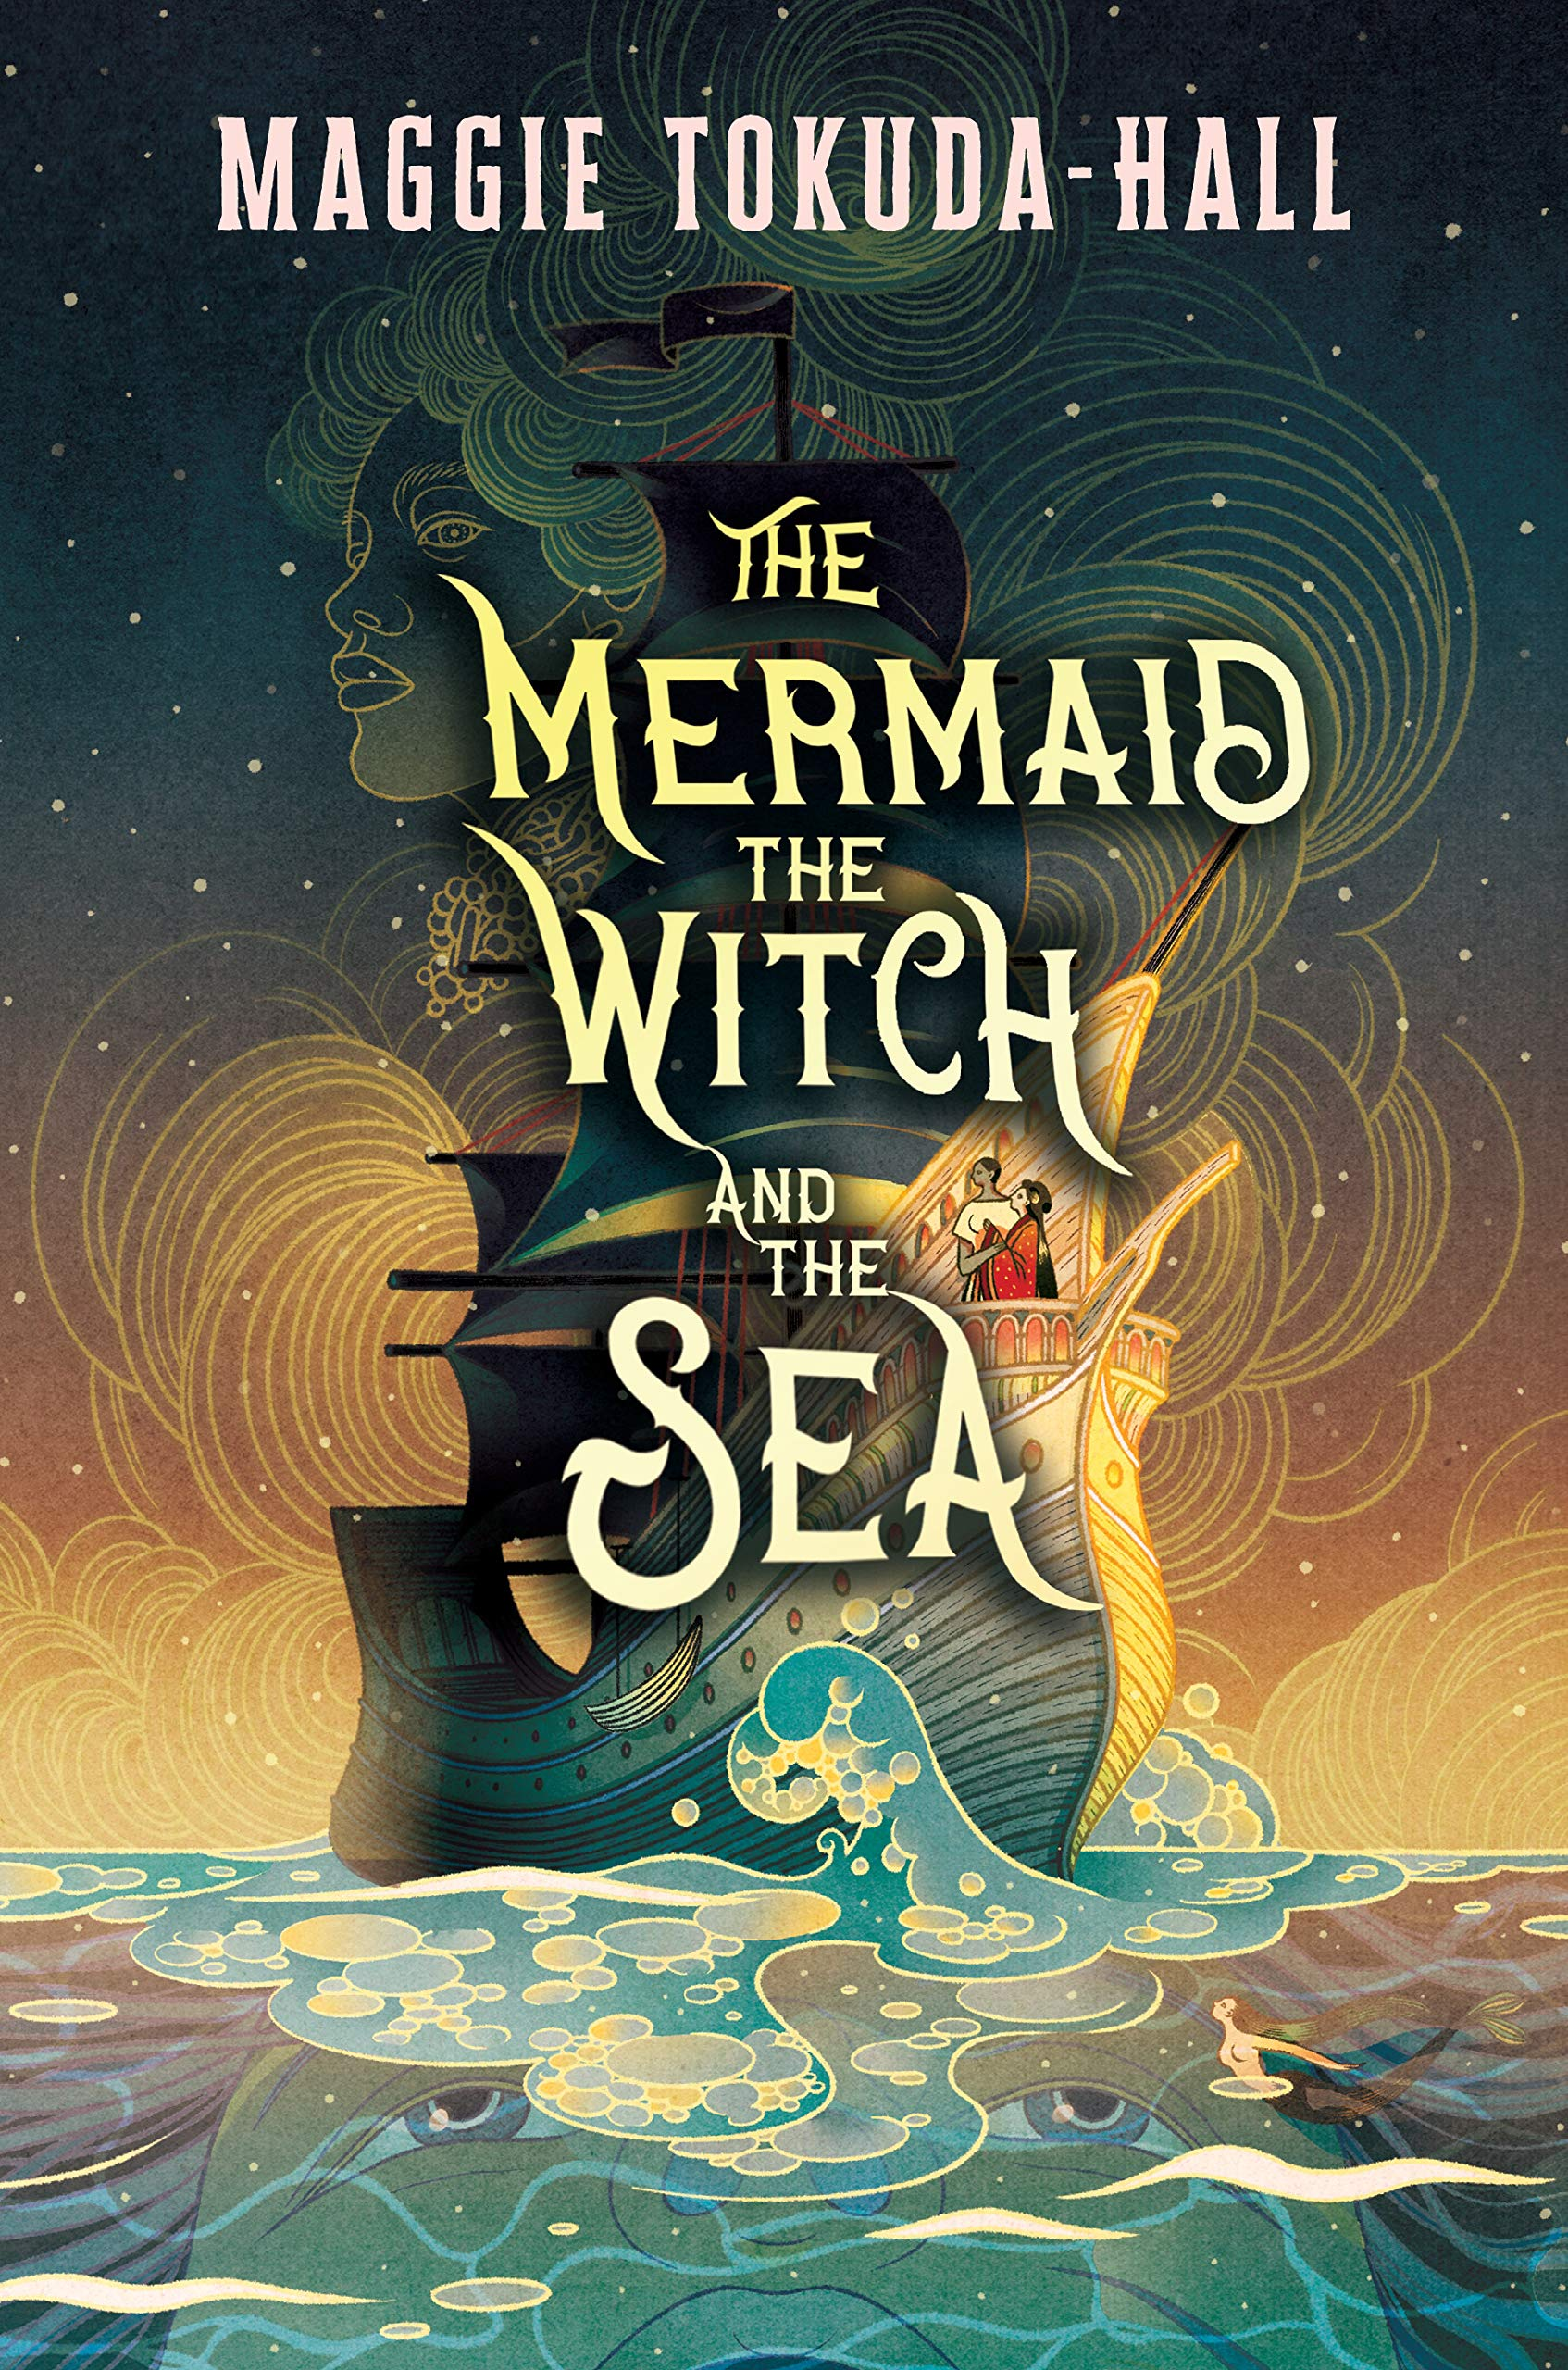 Amazon.com: The Mermaid, the Witch, and the Sea (9781536204315):  Tokuda-Hall, Maggie: Books